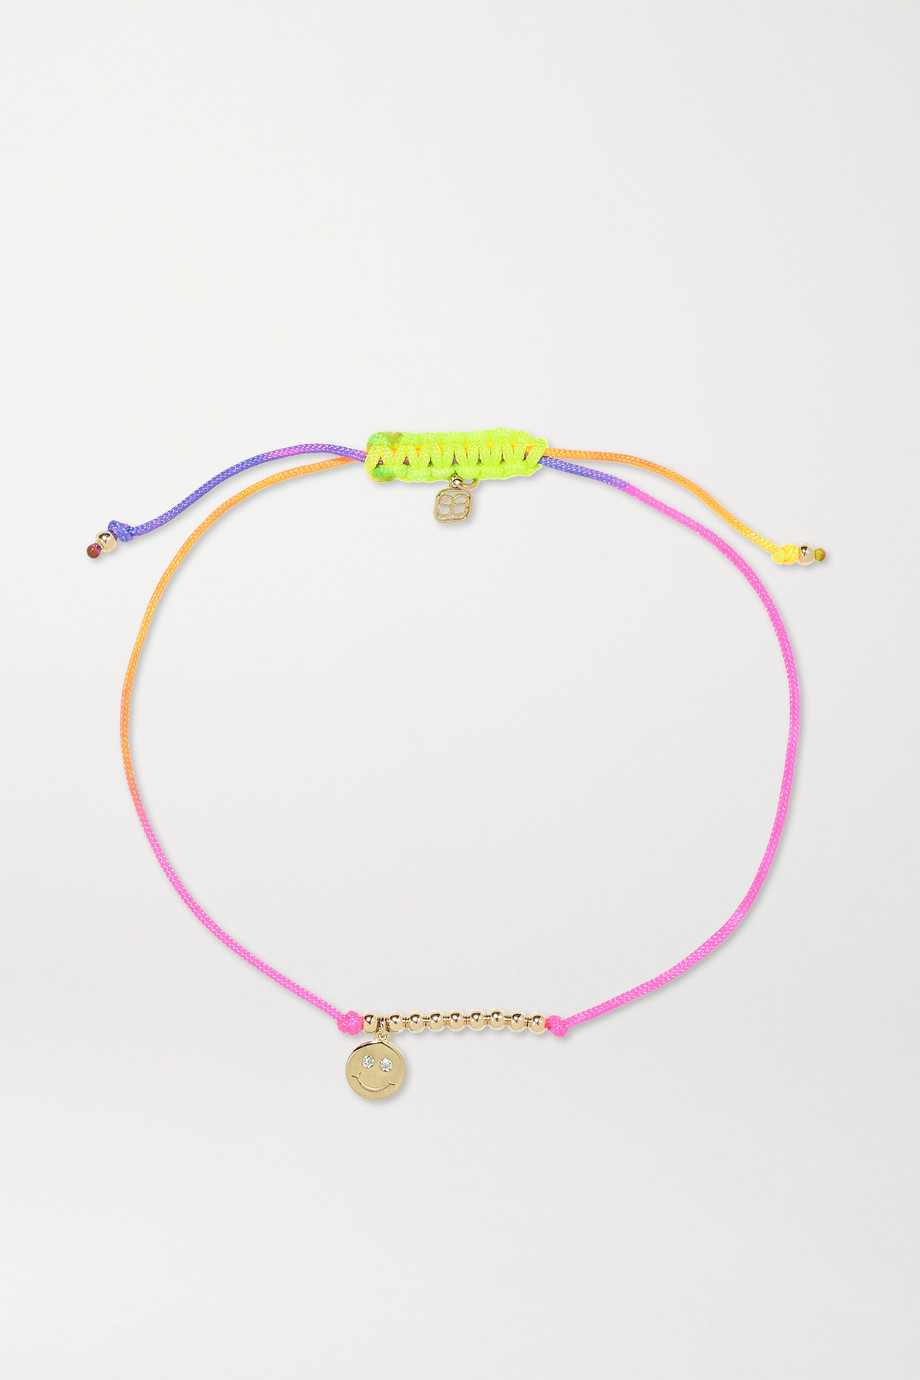 SYDNEY EVAN Happy Face 14-karat gold, neon cord and diamond bracelet